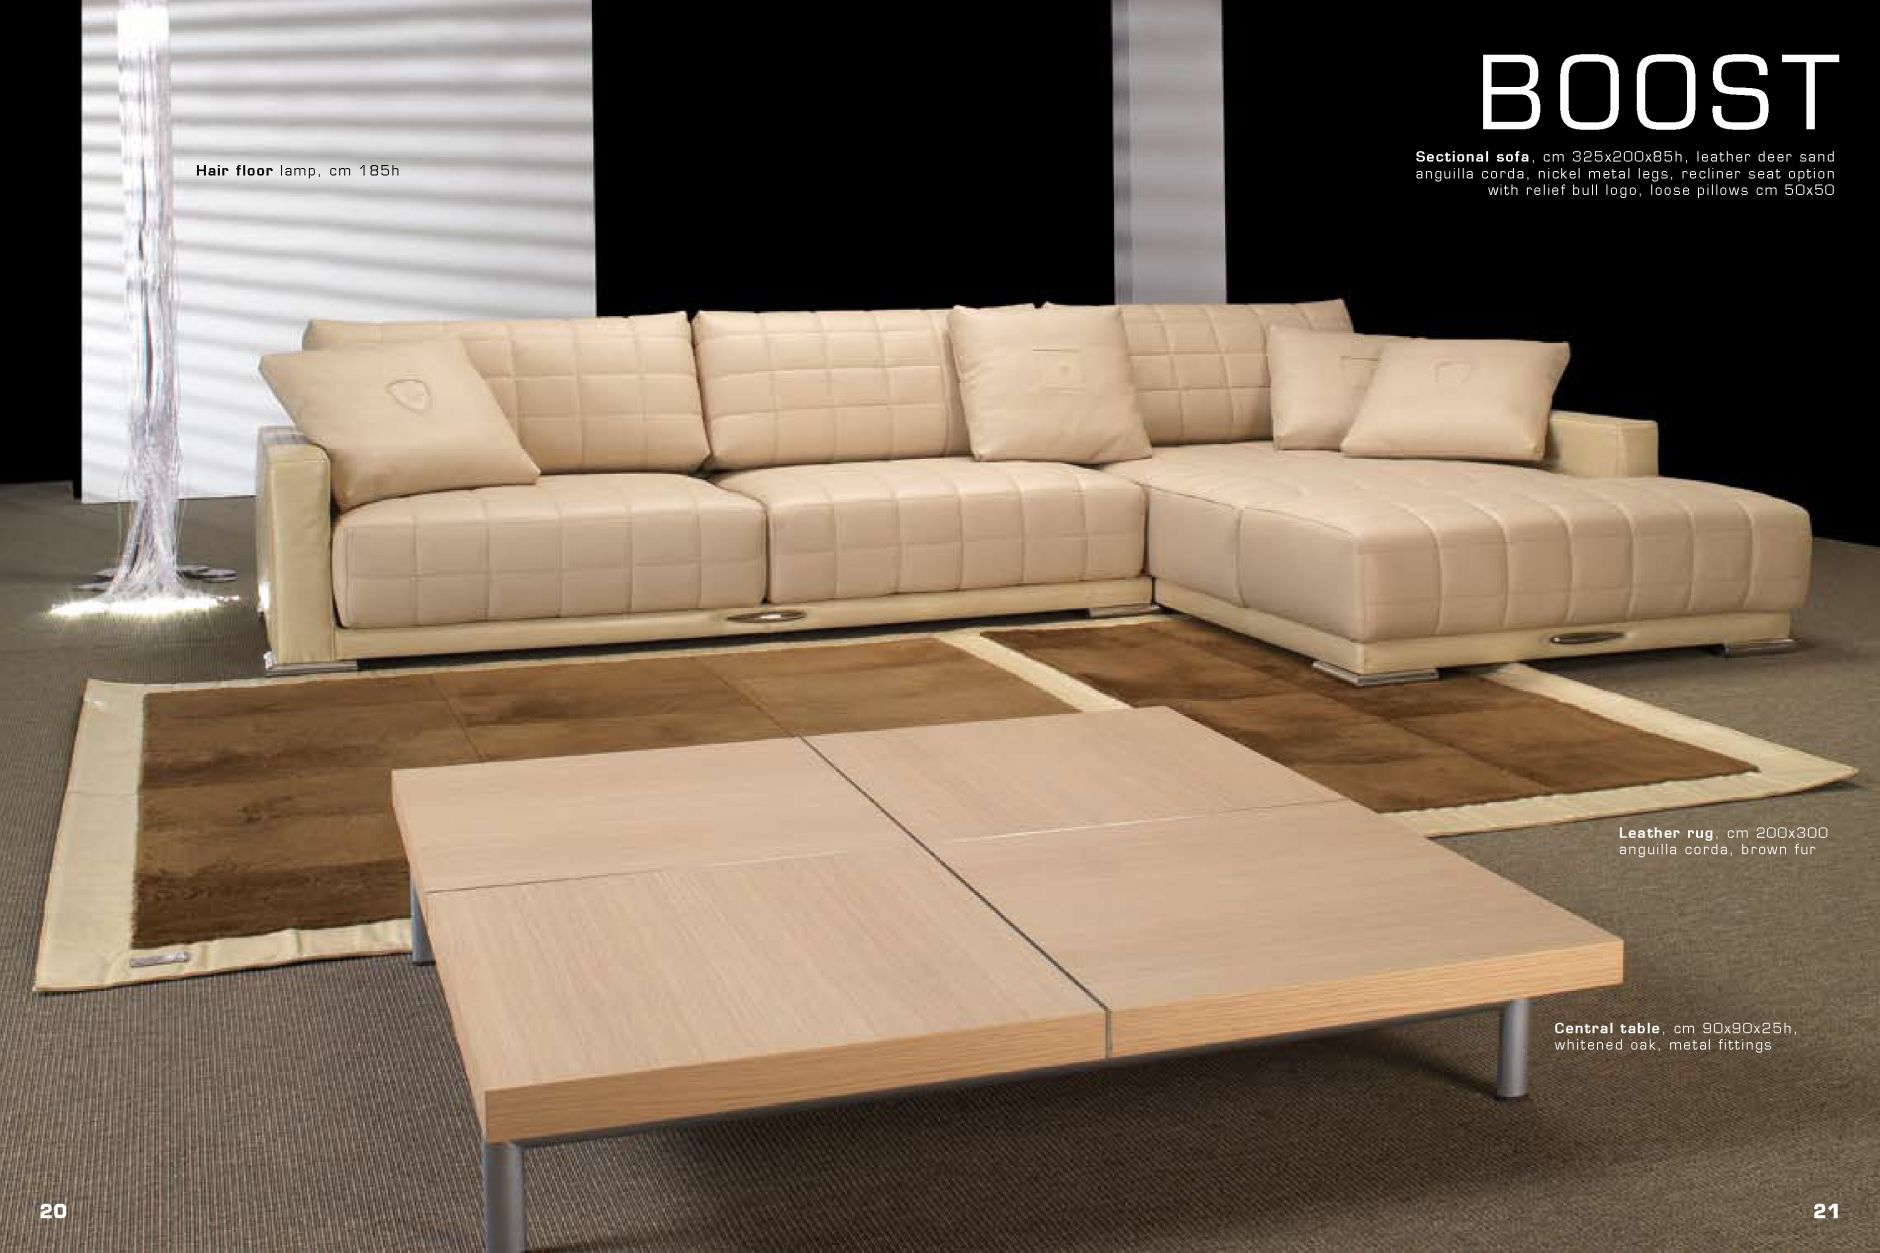 Sofa sectionnel vip sofa sectionnel boostles meubles de for Boost masny salle a manger